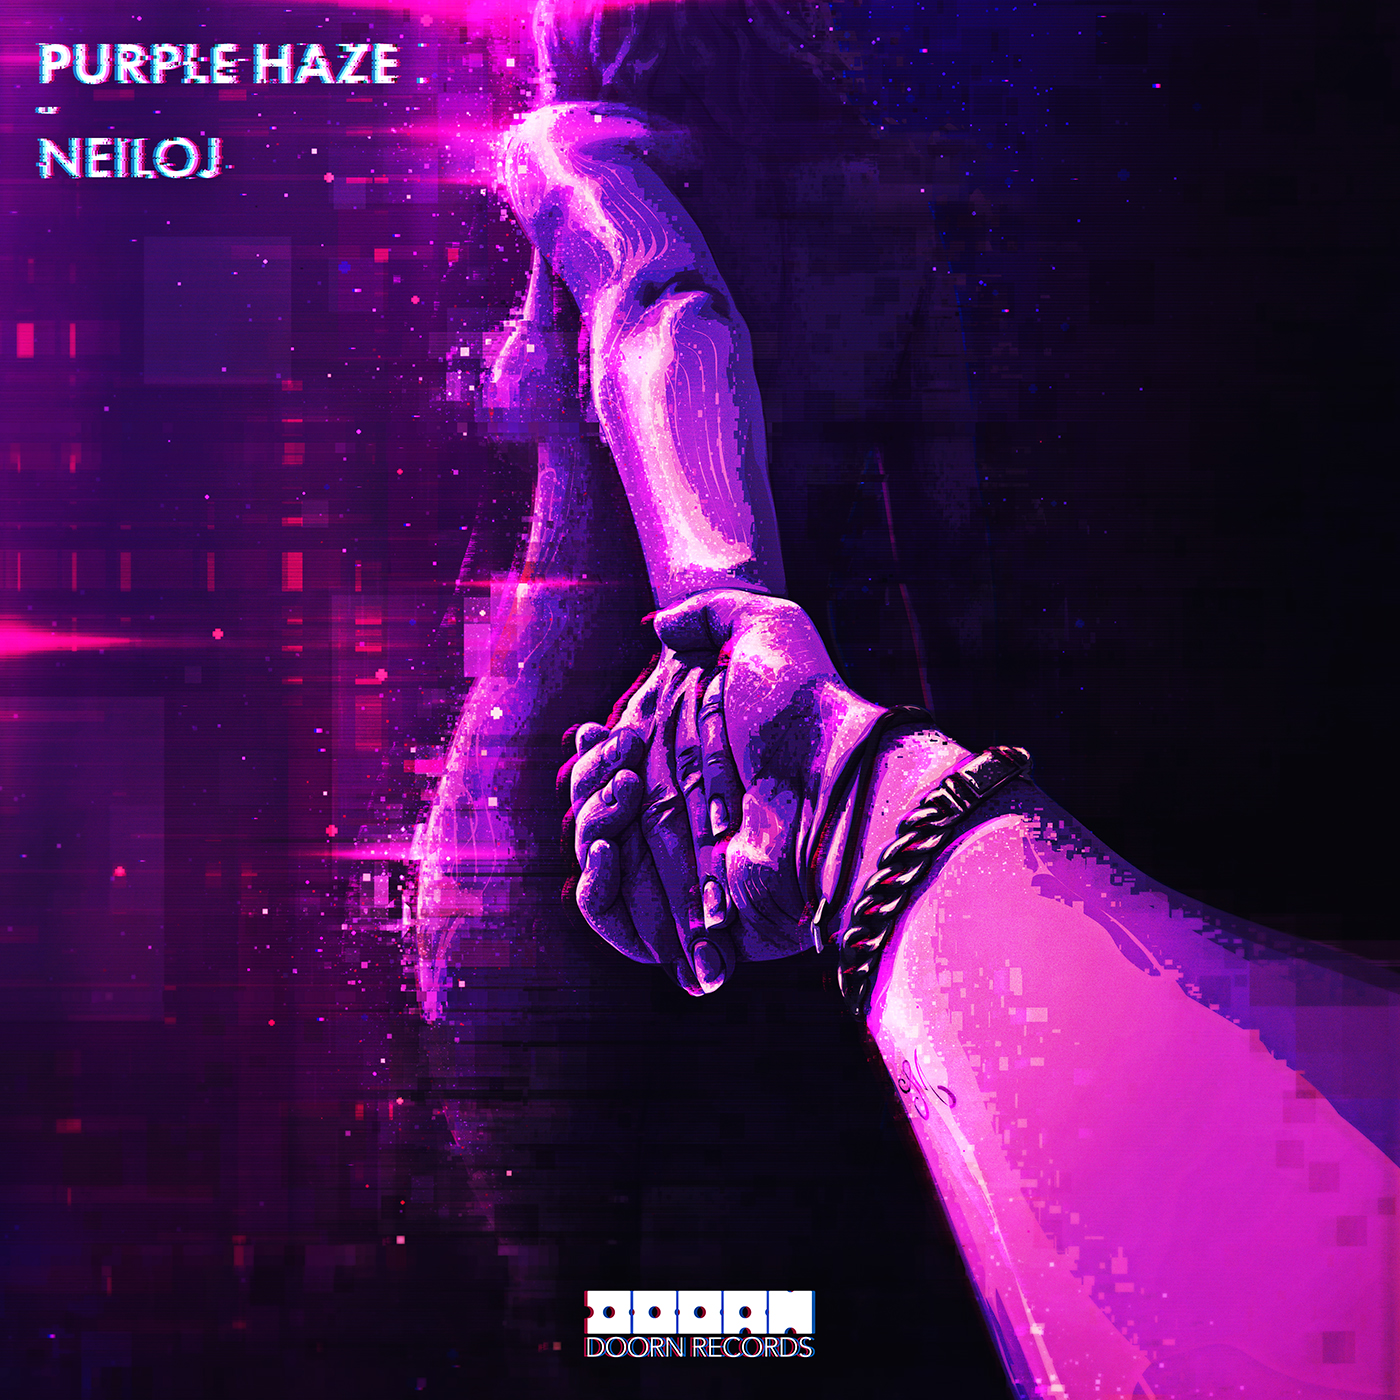 Purple_Haze-Neiloj_Final-Full copy 2